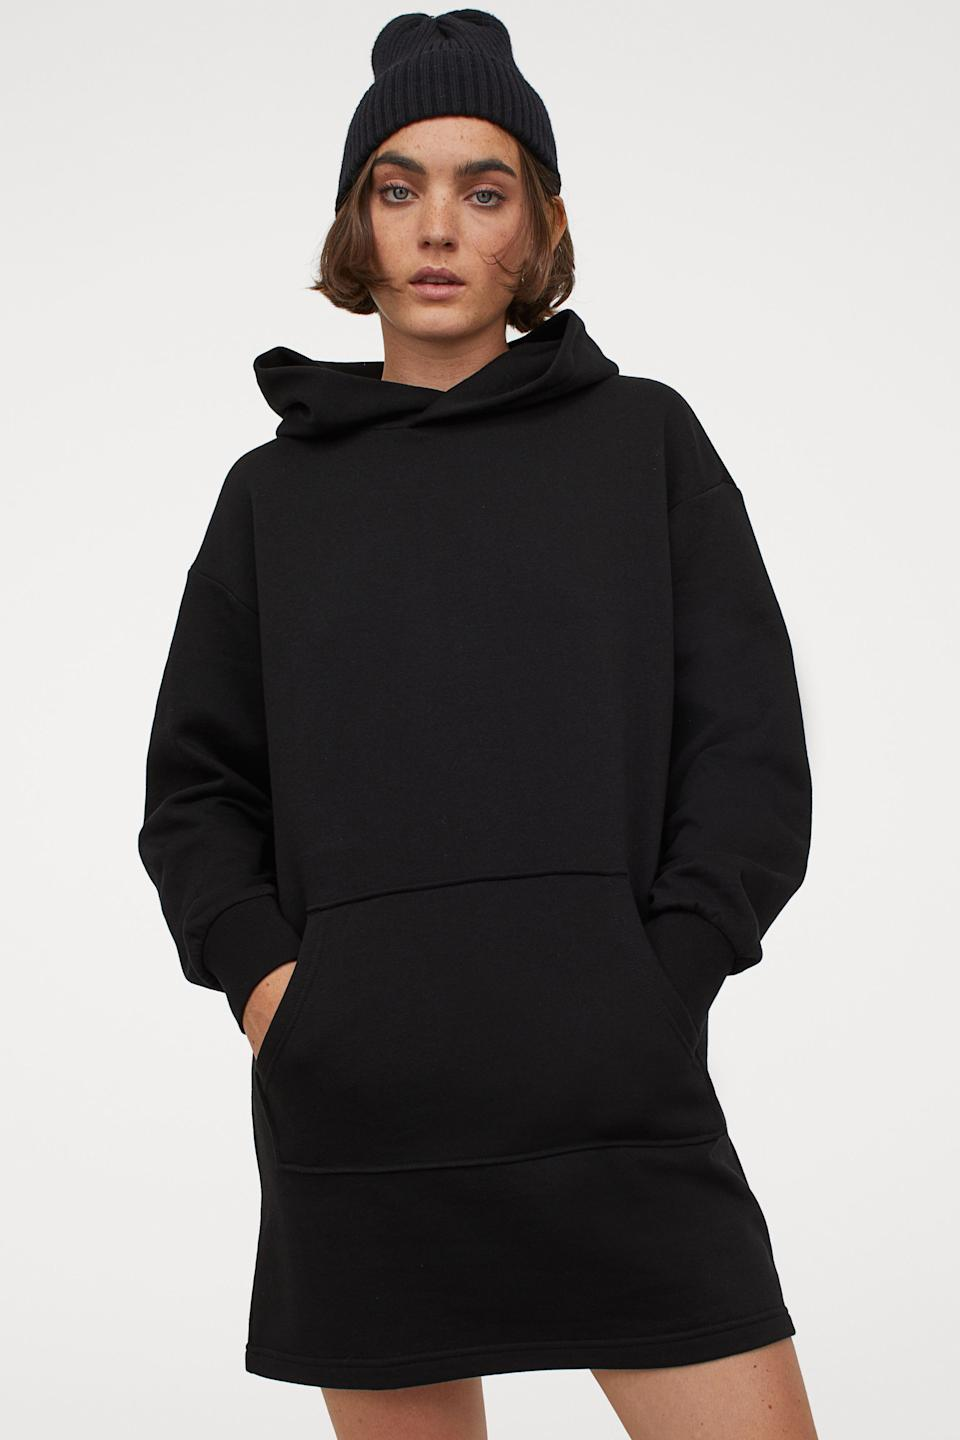 "<br><br><strong>H&M</strong> Hooded Sweatshirt Dress, $, available at <a href=""https://go.skimresources.com/?id=30283X879131&url=https%3A%2F%2Fwww2.hm.com%2Fen_us%2Fproductpage.0776179001.html"" rel=""nofollow noopener"" target=""_blank"" data-ylk=""slk:H&M"" class=""link rapid-noclick-resp"">H&M</a>"